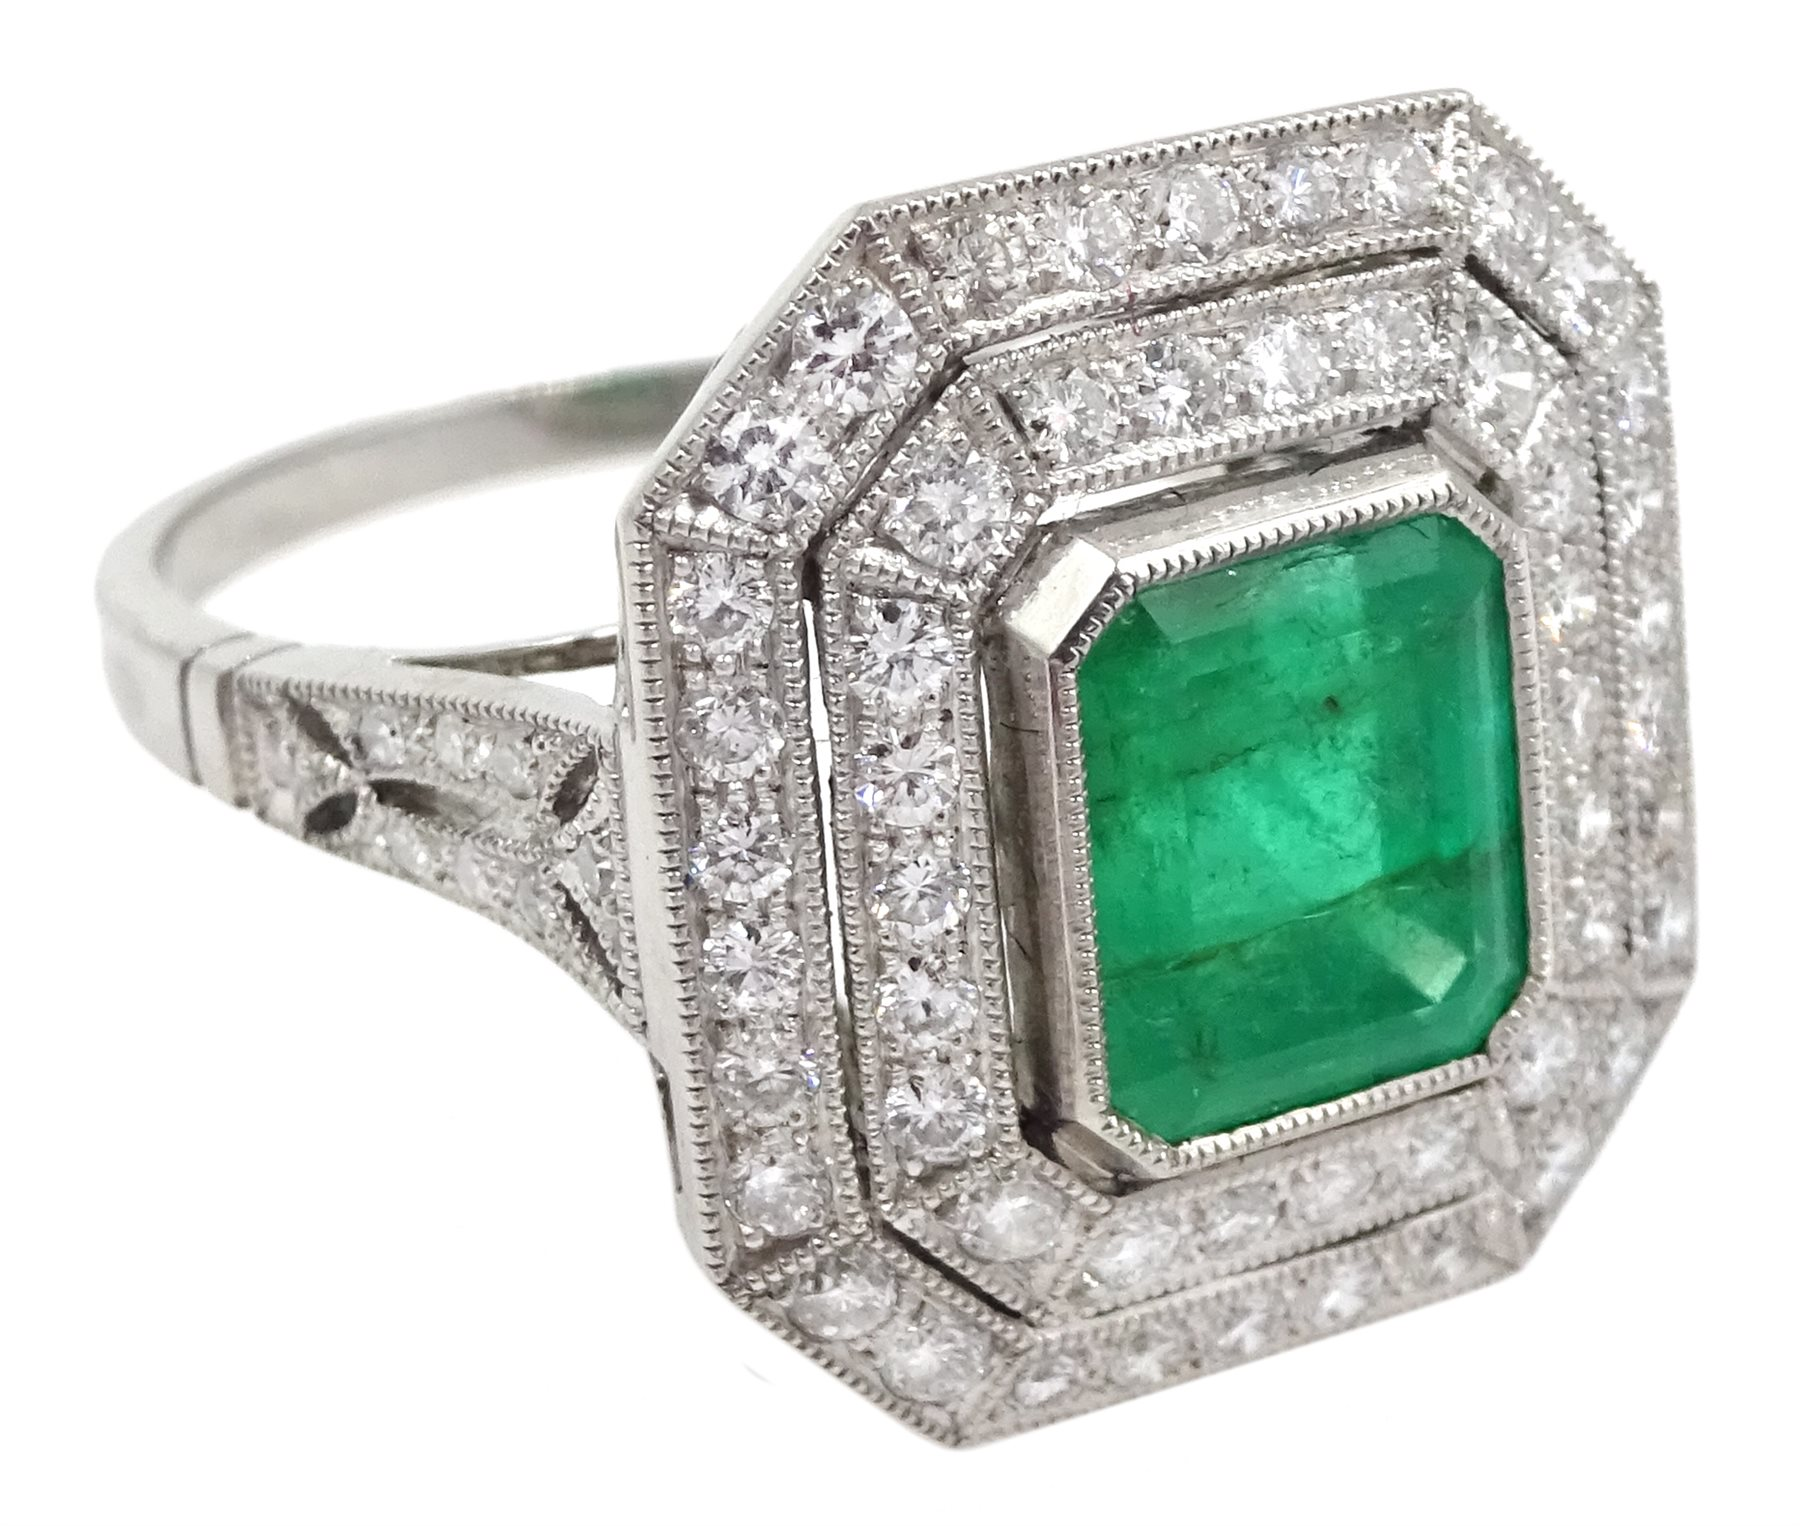 Platinum emerald and double row diamond ring, with diamond set shoulders, emerald approx 1.85 carat, - Image 3 of 5